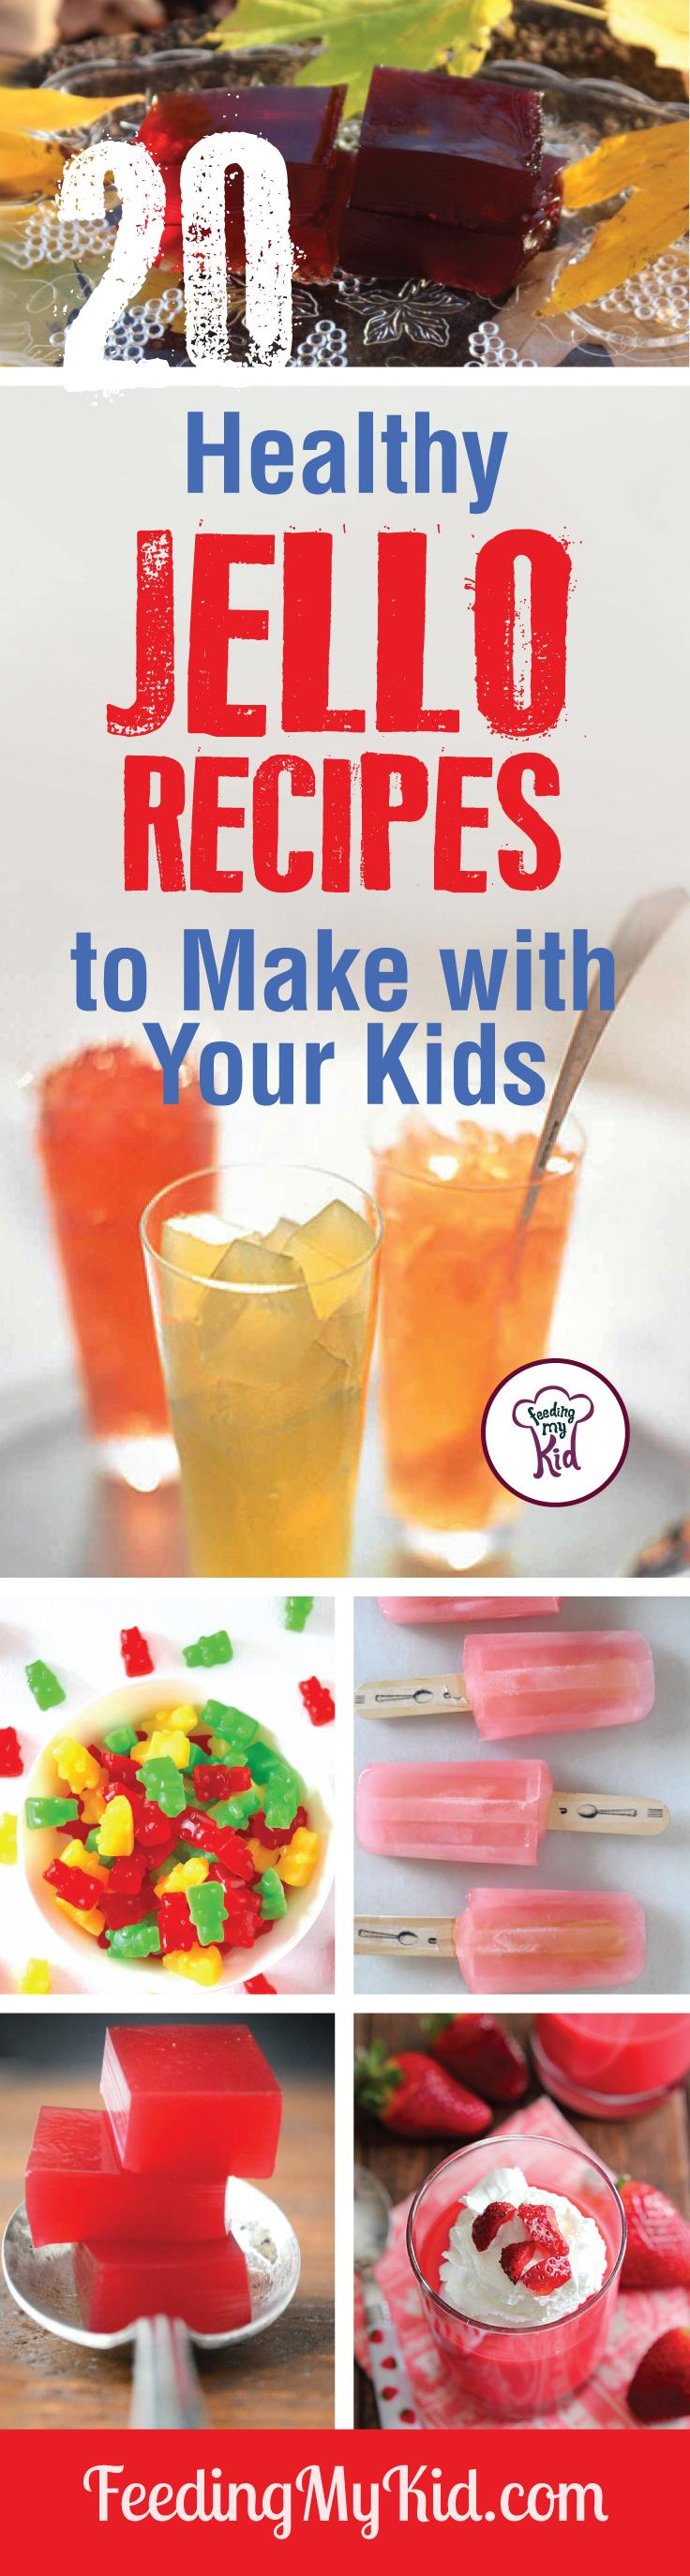 Try these amazing jello recipes for your kids. They're so tasty! You'll love them! Feeding My Kid is filled with all the information you need about how to raise your kids, from healthy tips to nutritious recipes. #FeedingMyKid #jellorecipes #dessert